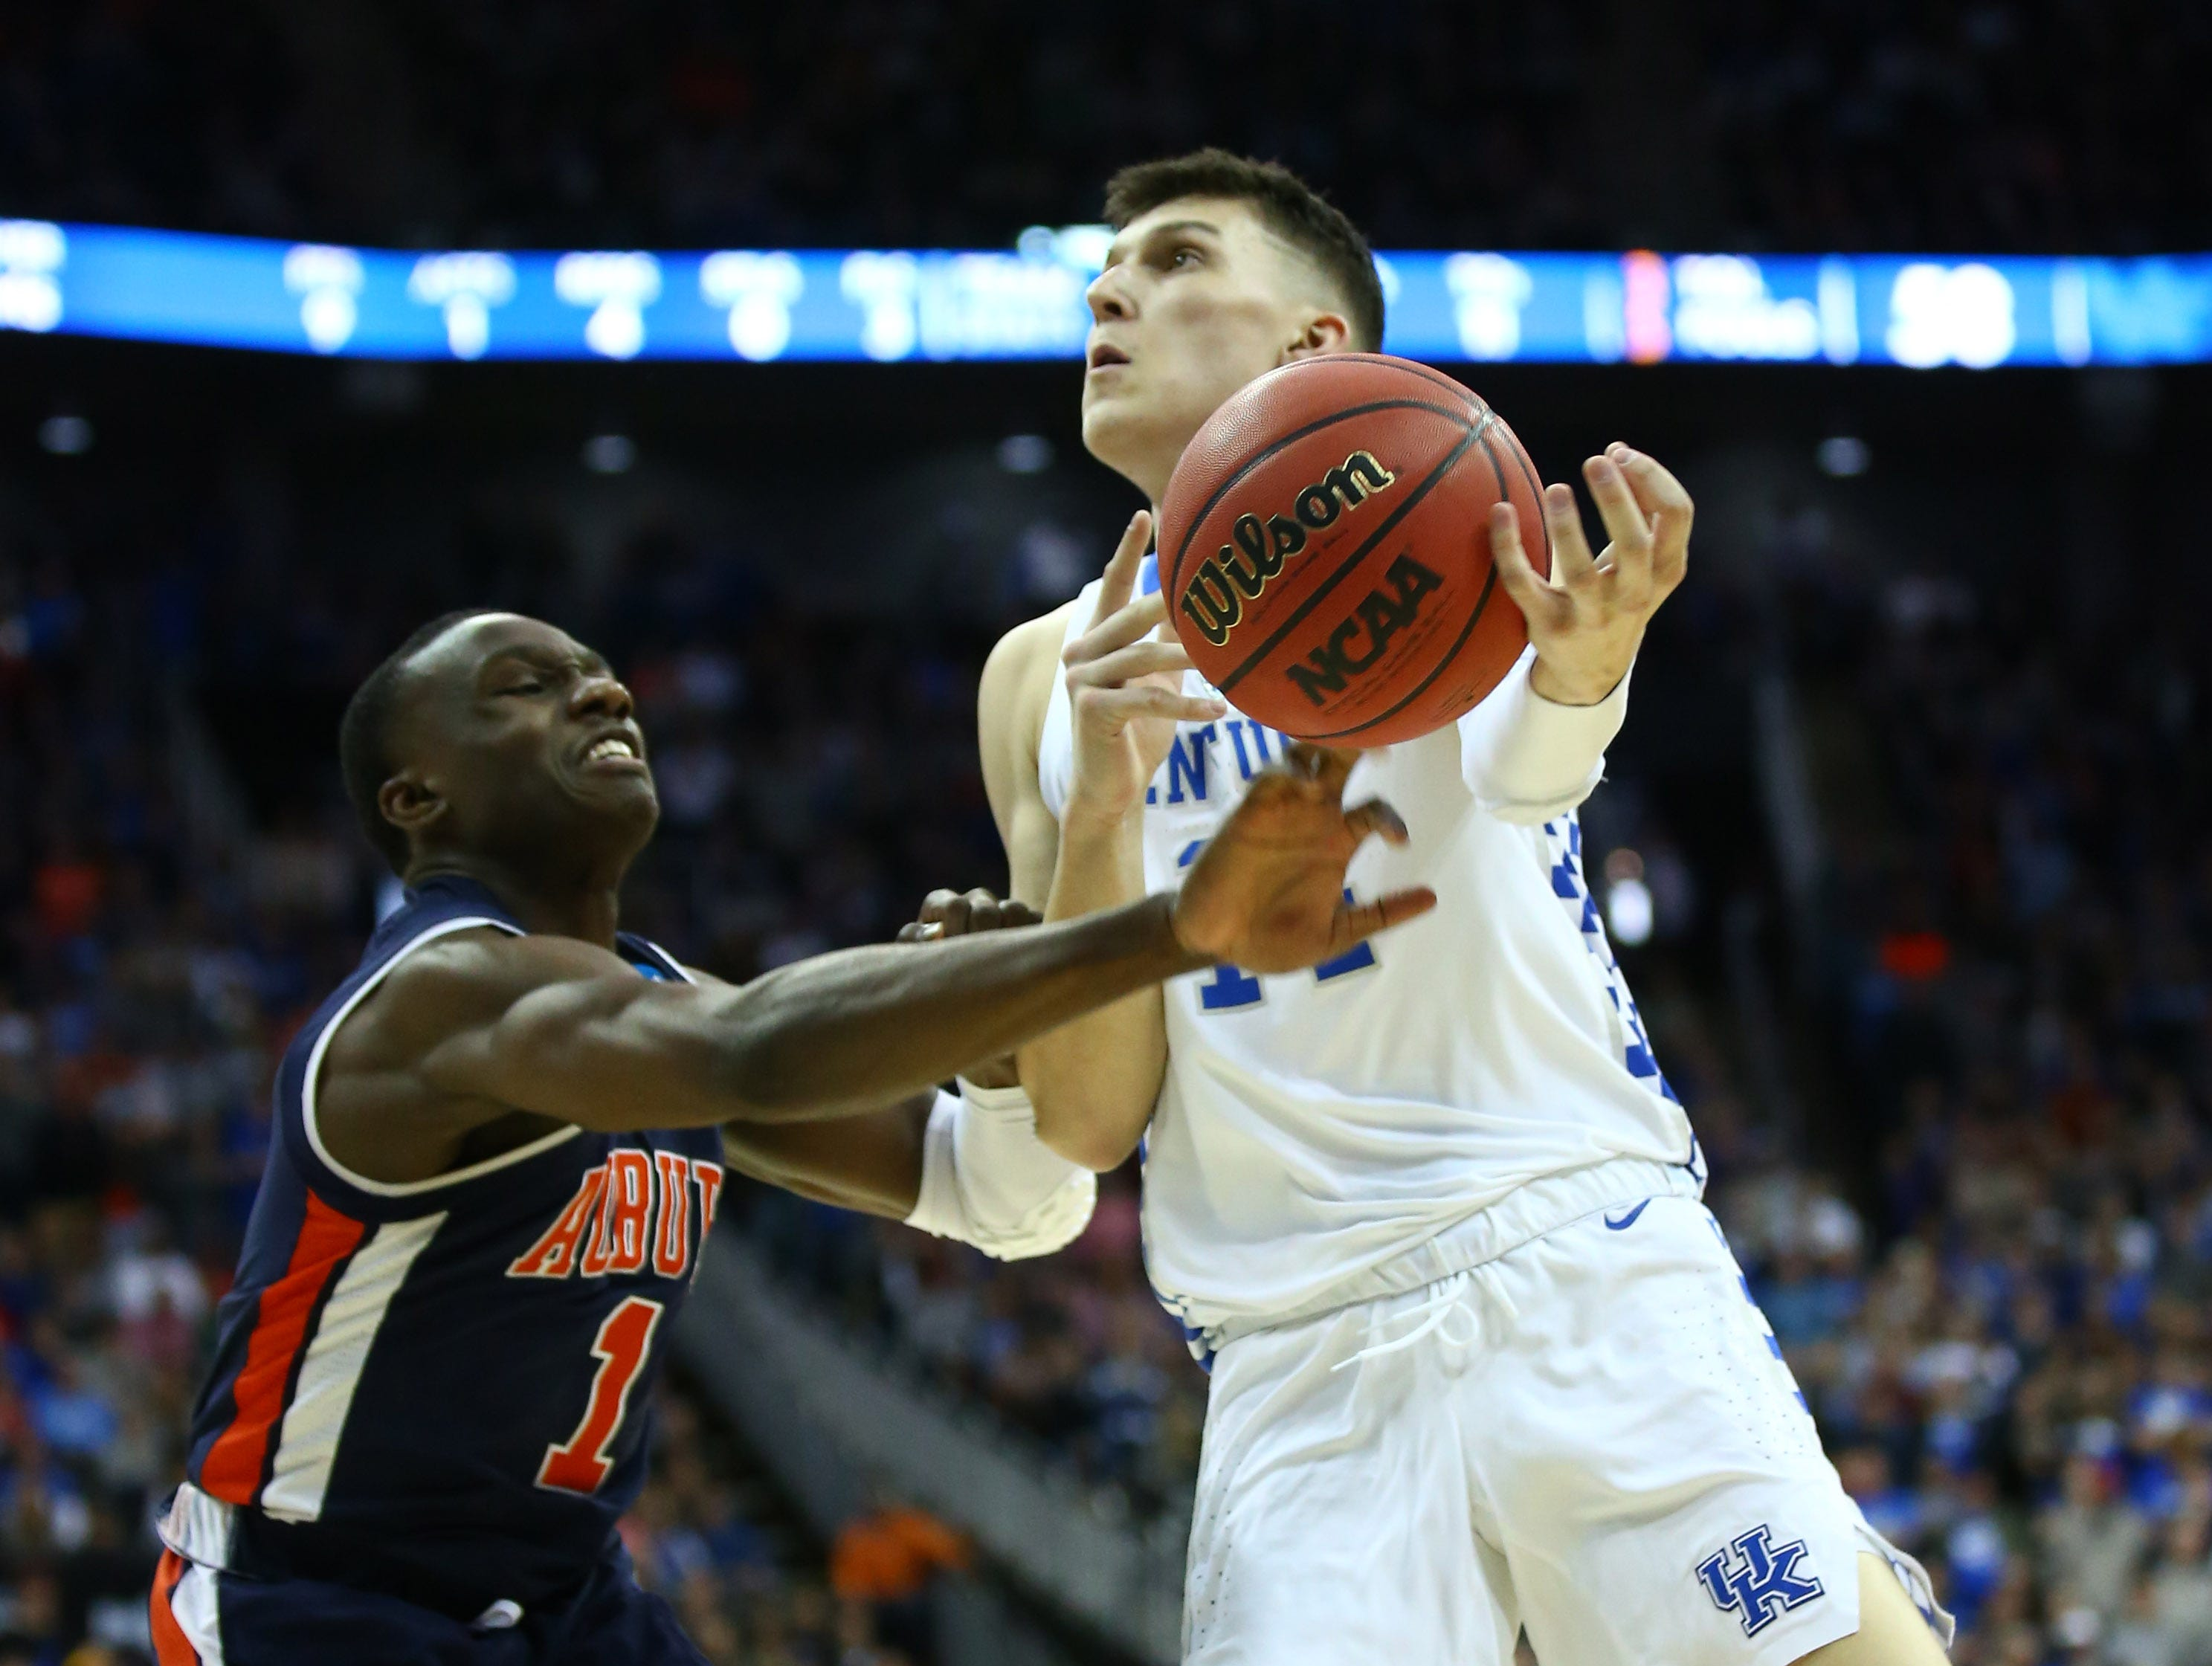 Mar 31, 2019; Kansas City, MO, United States; Auburn Tigers guard Jared Harper (1) knocks the ball away from Kentucky Wildcats guard Tyler Herro (14) during the second half in the championship game of the midwest regional of the 2019 NCAA Tournament at Sprint Center. Mandatory Credit: Jay Biggerstaff-USA TODAY Sports